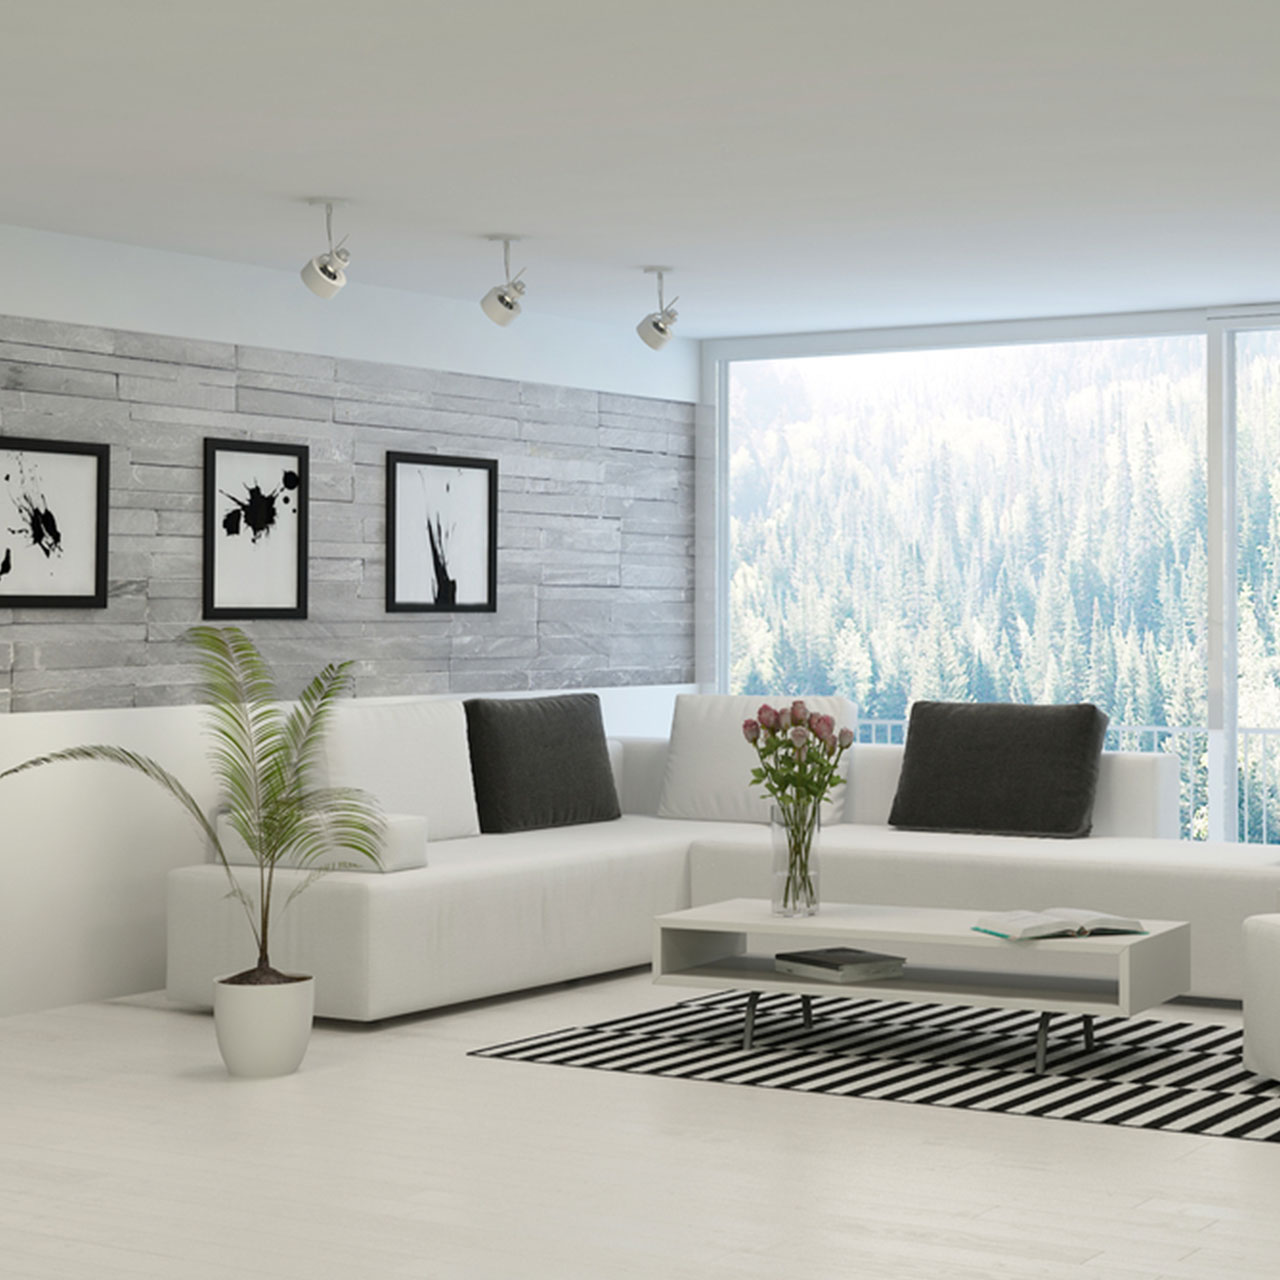 Choose Right Color for your Penthouse